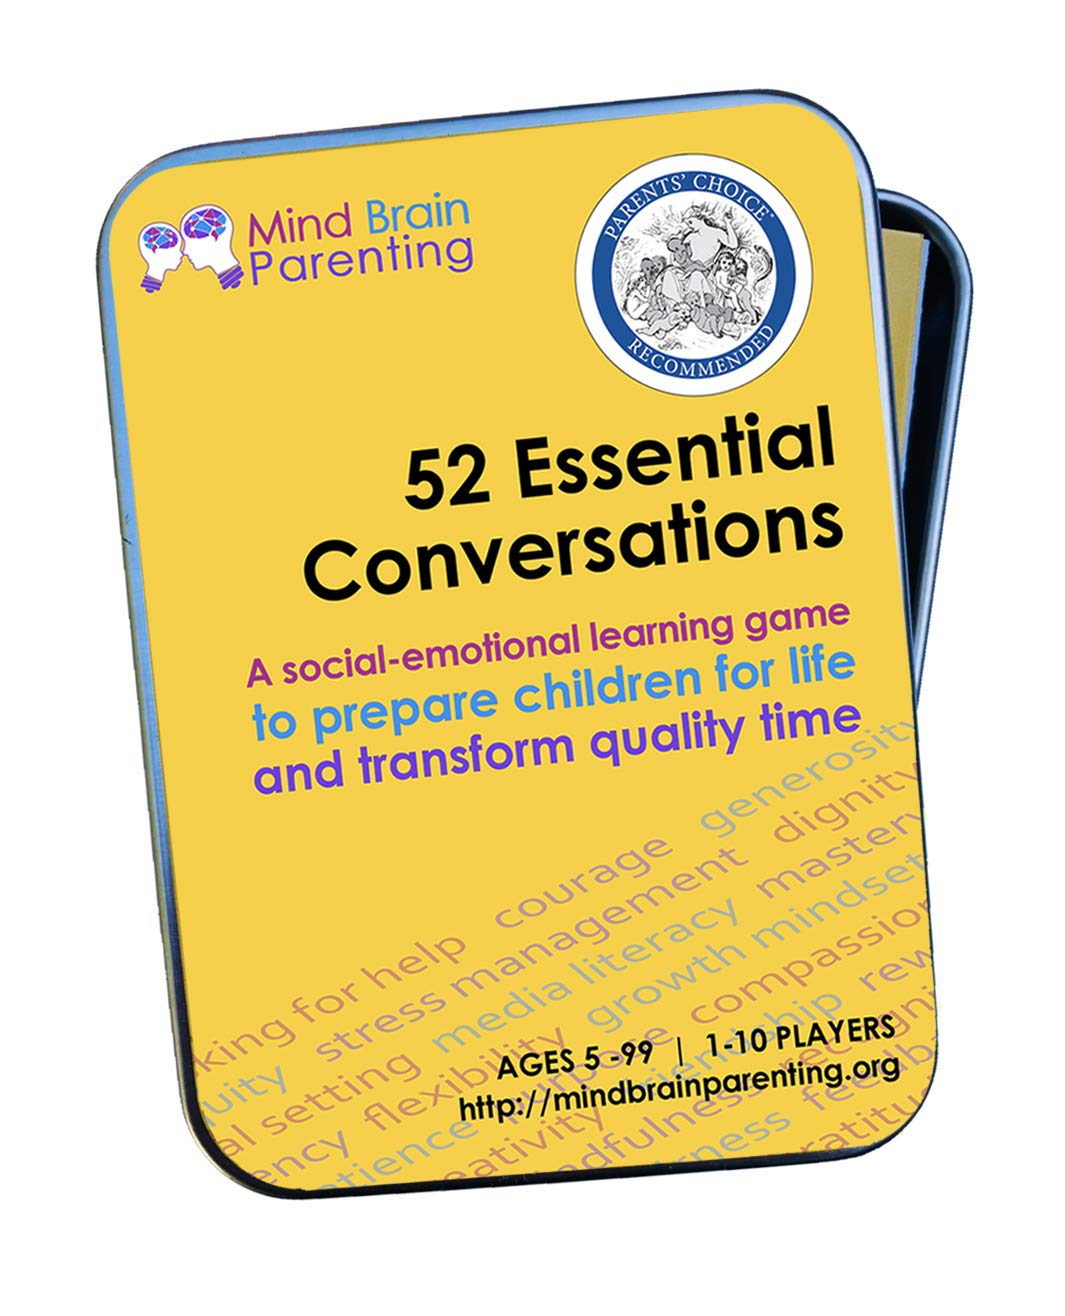 Growth Mindset /& Vocabulary Skills Builds Social Emotional Created by Harvard Educators Mind Brain Parenting 52 Essential Conversations: The Life Skills Card Game for Age 5 to Adults Critical Thinking